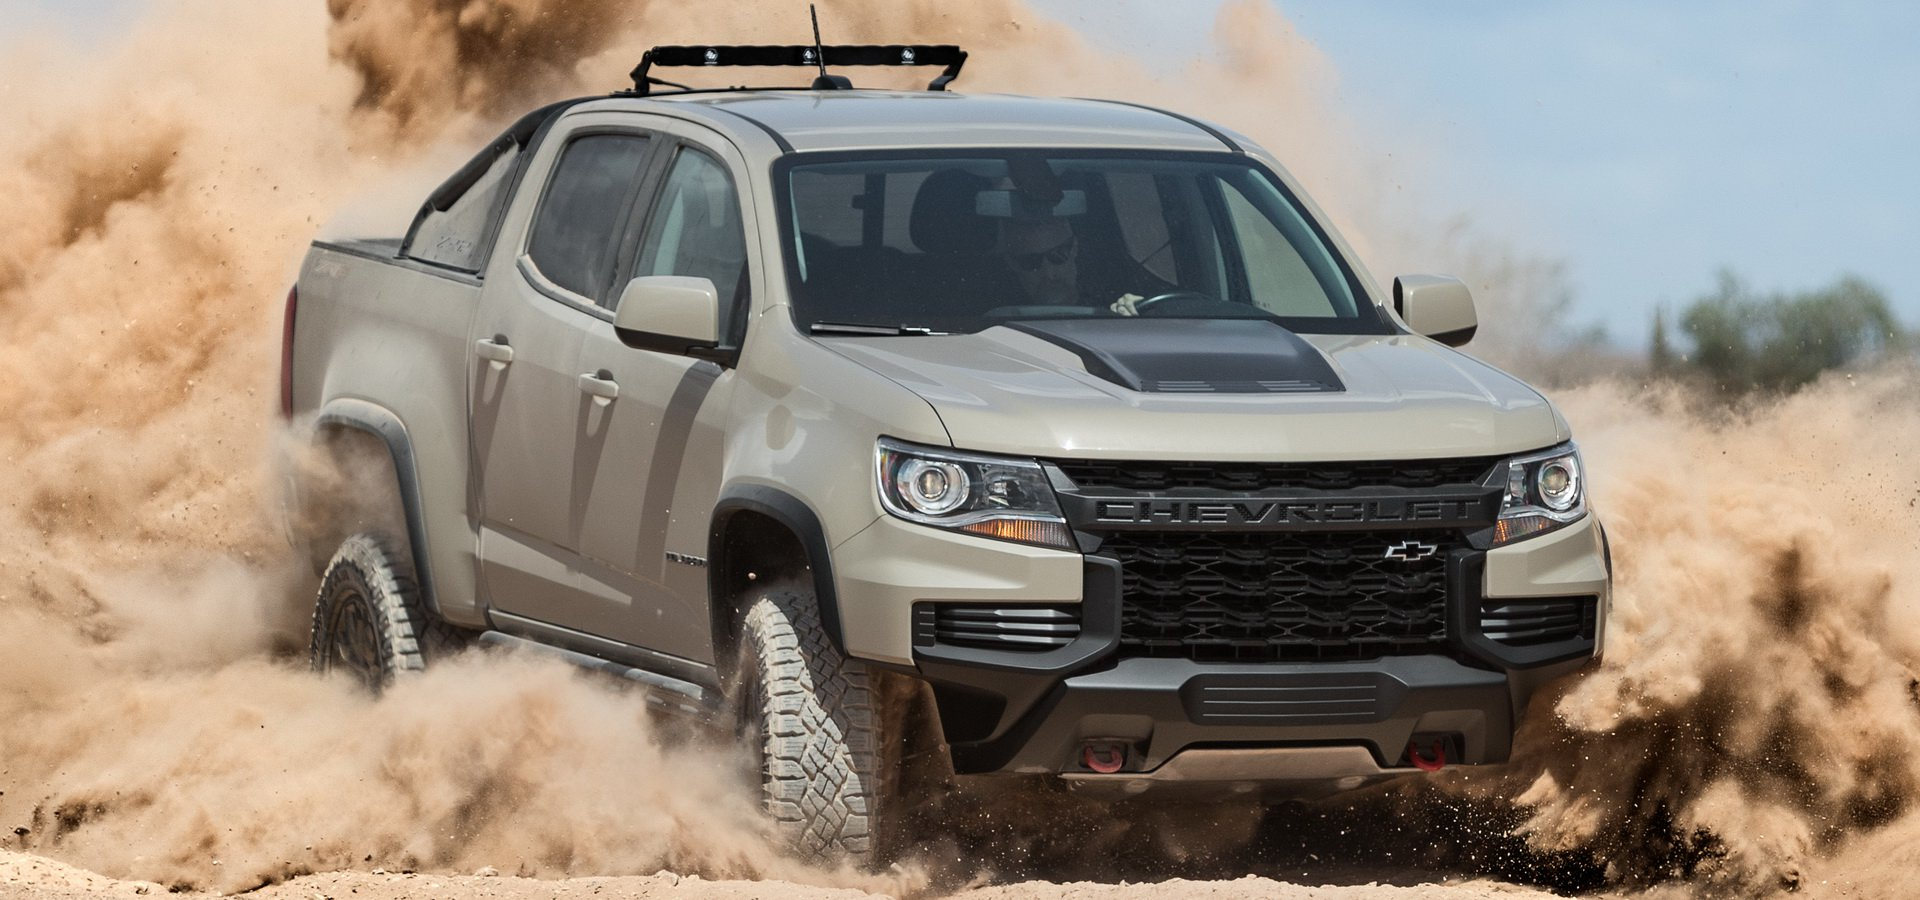 The ZR2 variant of the Chevrolet Colorado has been on the market since 2017 and is due a minor design update, which is what it will receive next year. The North American carmaker claims the new aggressive design better suits the capabilities of the off-road truck.